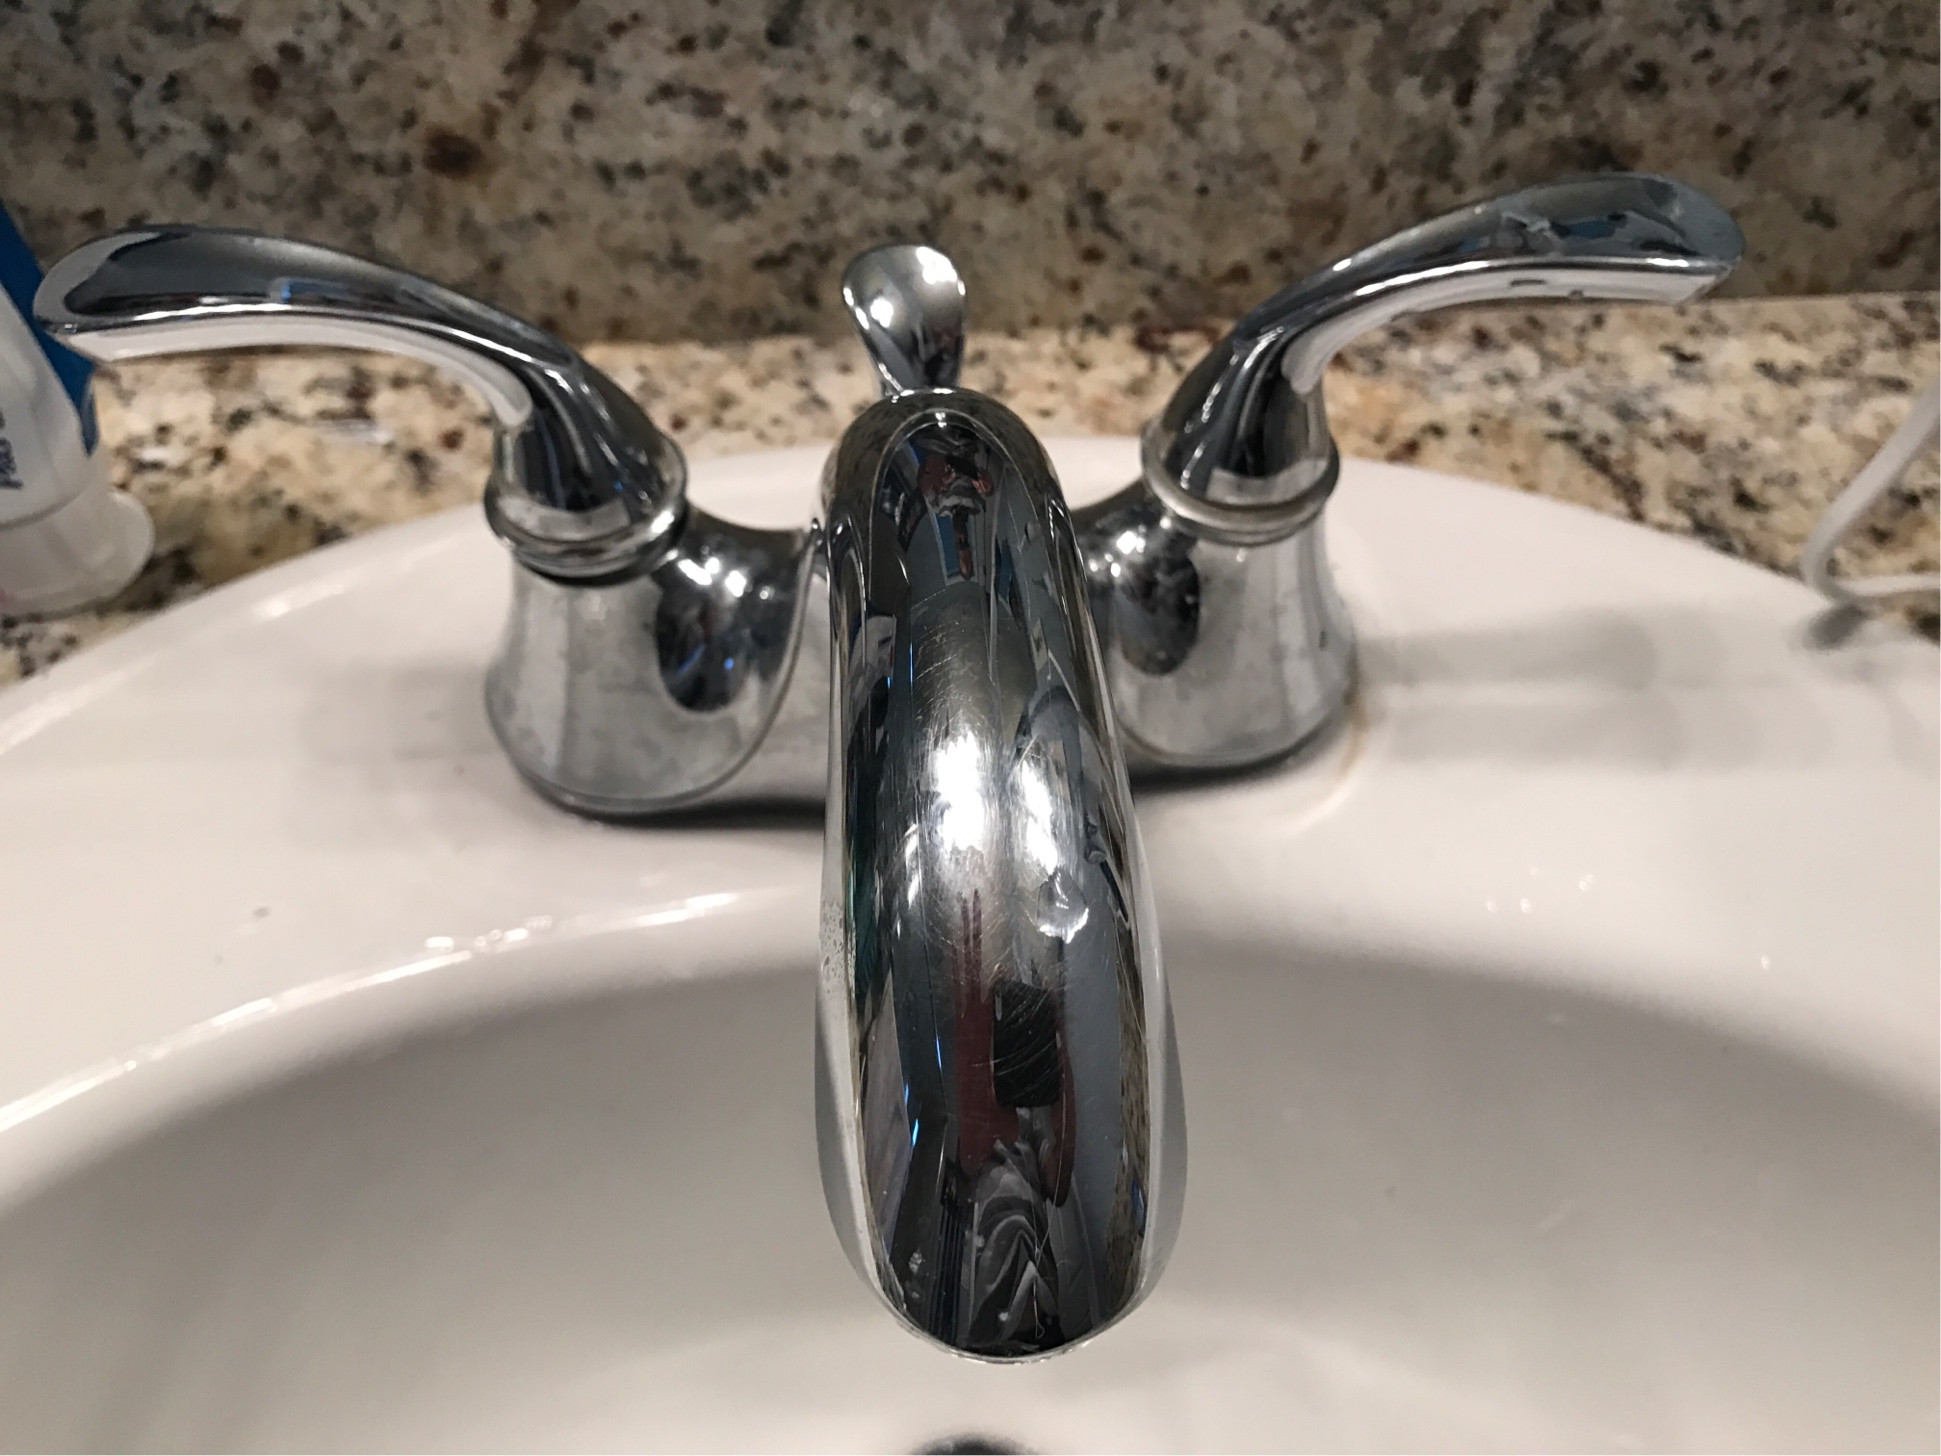 plumbing  Tightening a bathroom faucet  Home Improvement